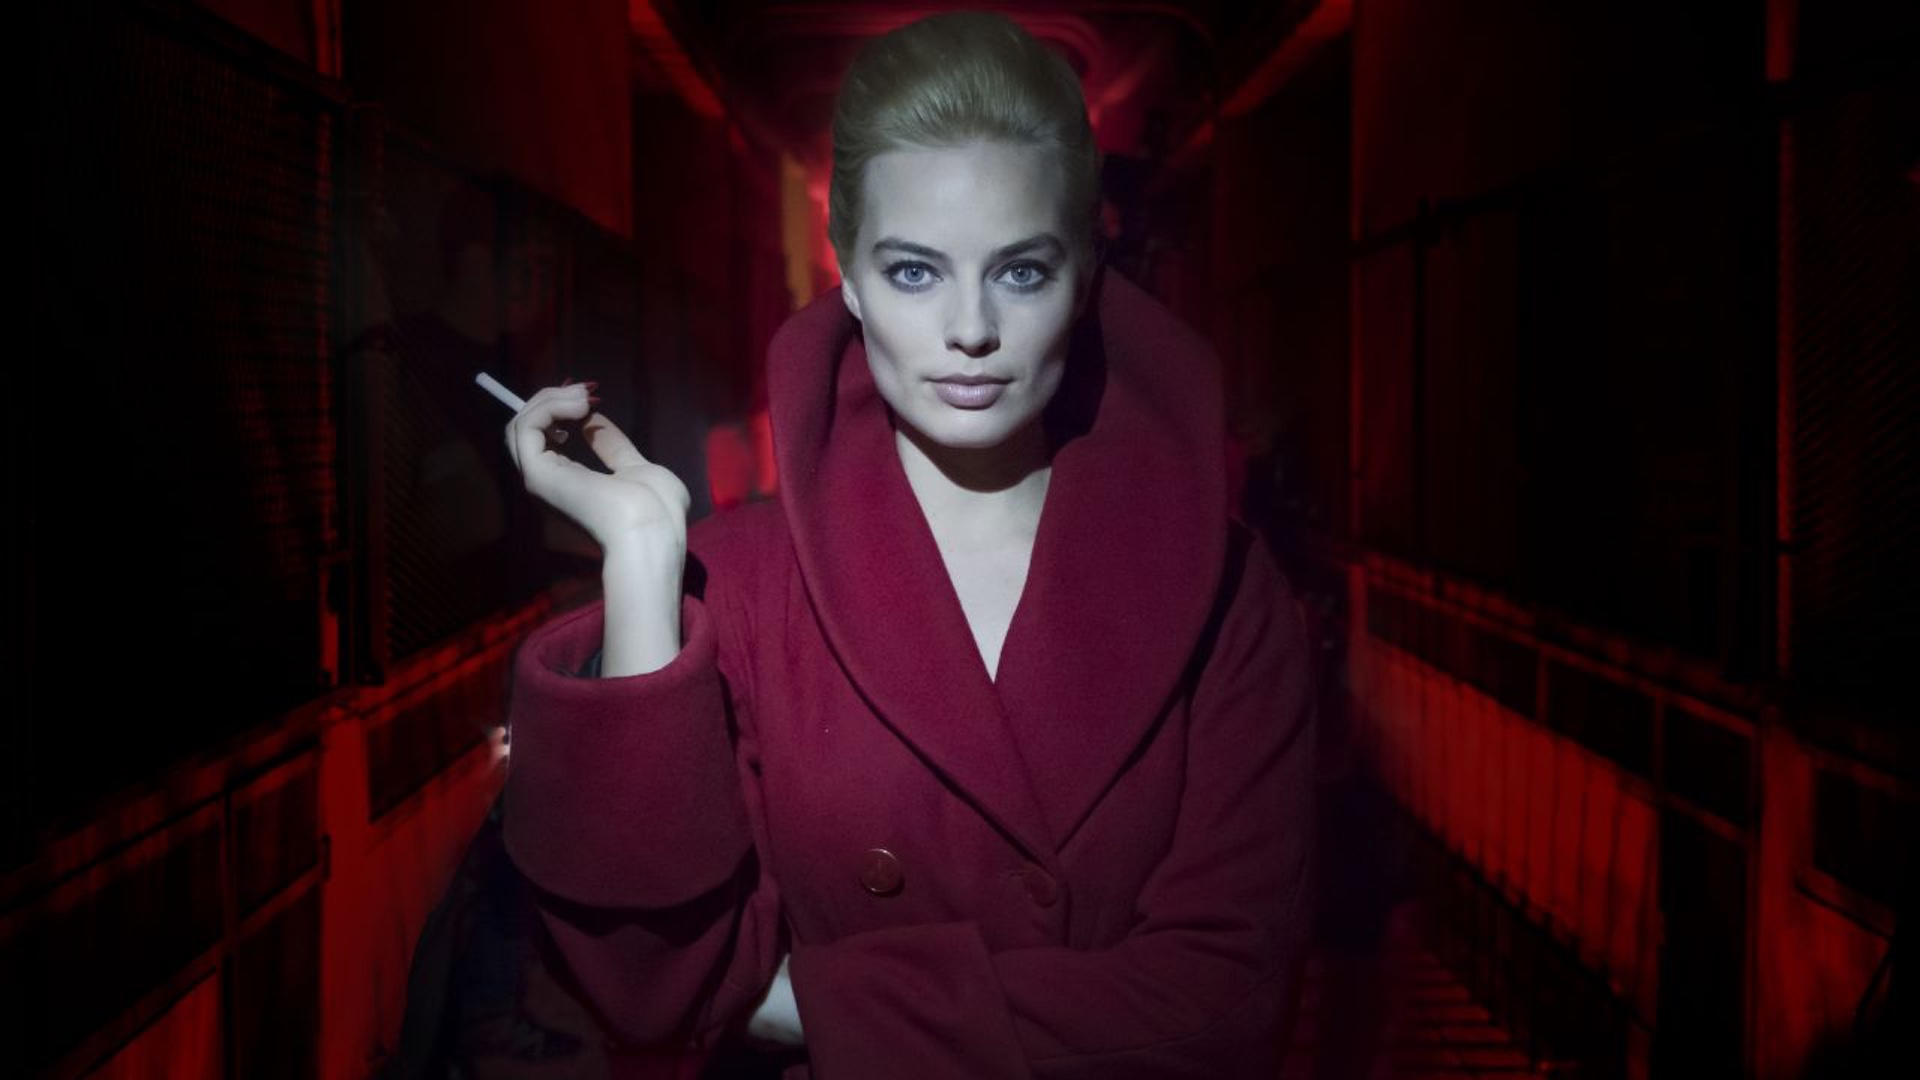 teaser-trailer-for-margot-robbie-and-simon-peggs-dark-noir-thriller-terminal-social.jpg